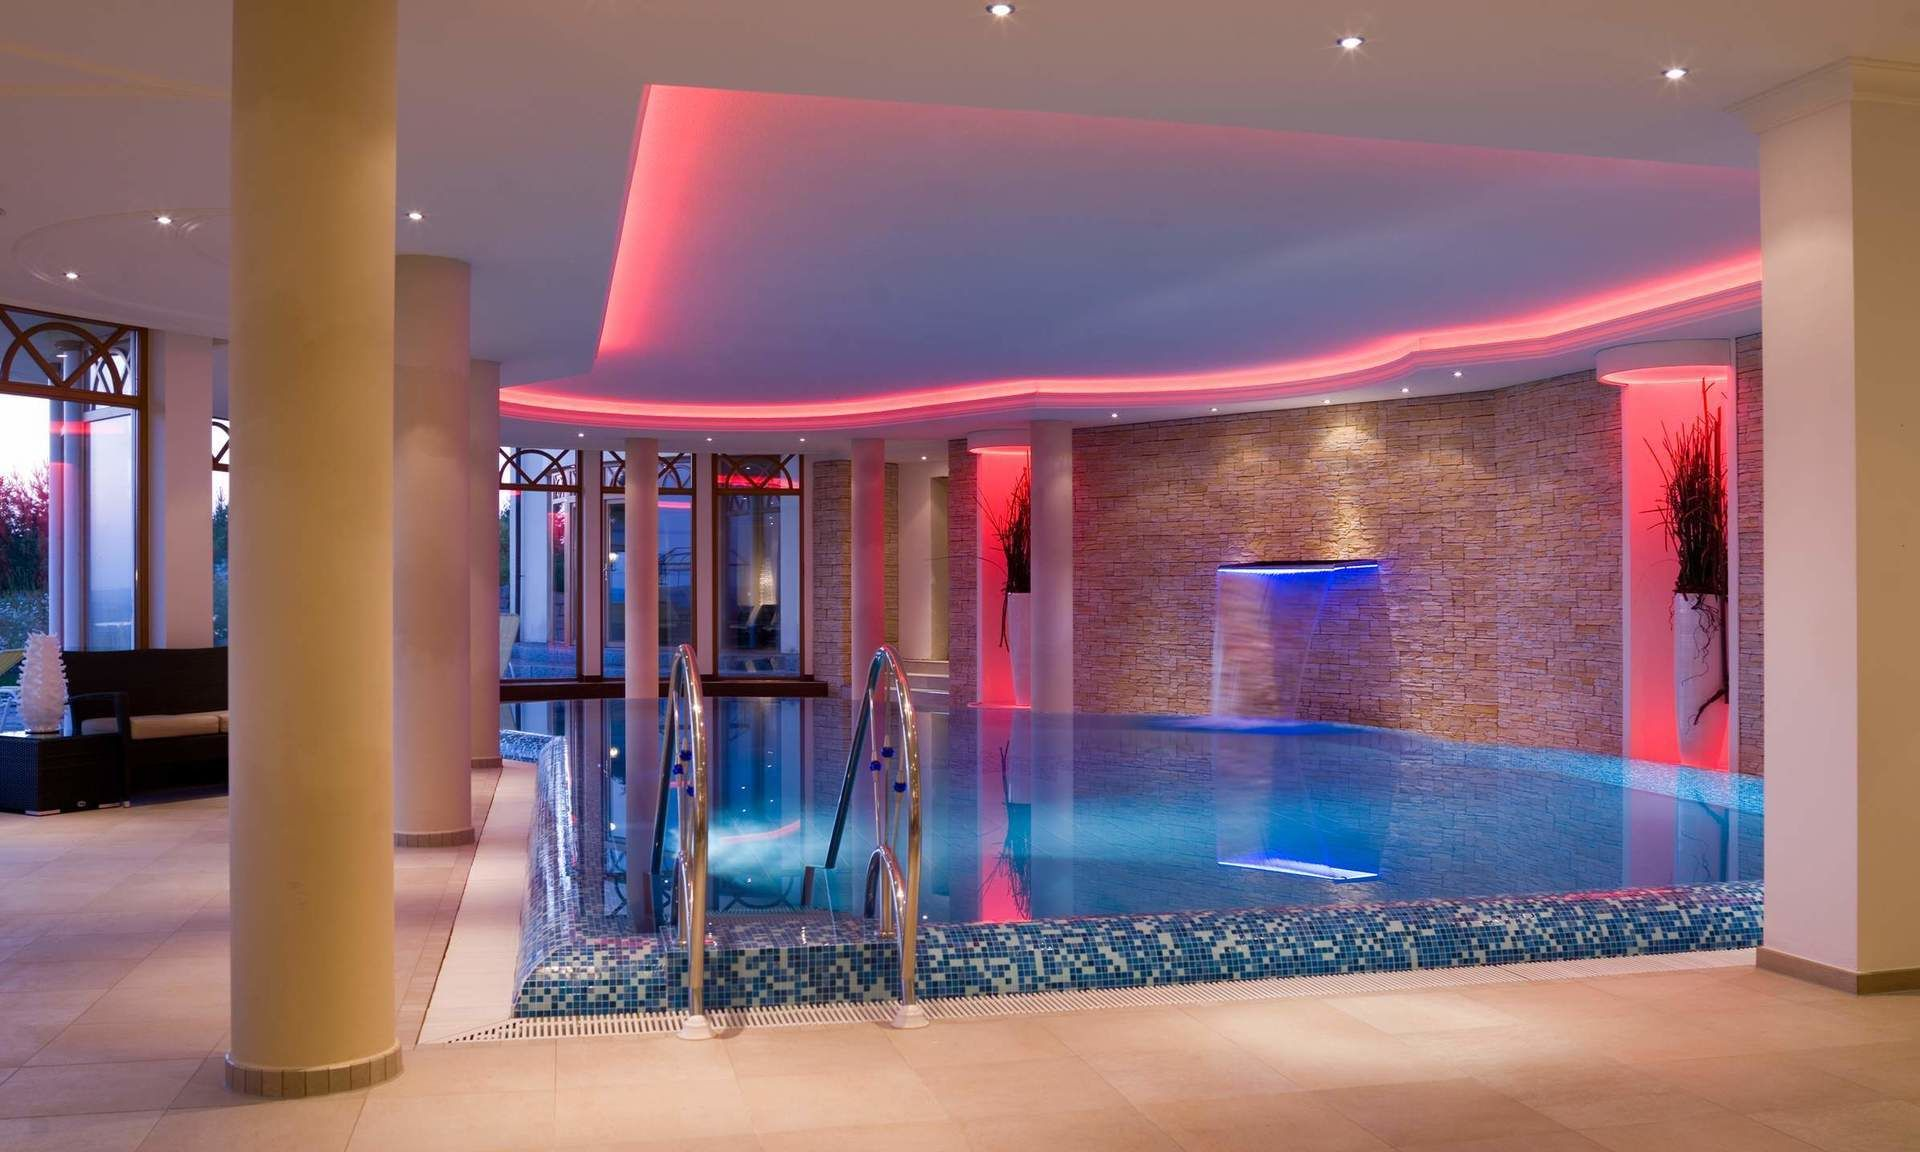 Pool indoor wellness hotel Landhotel Birkenhof Bavaria